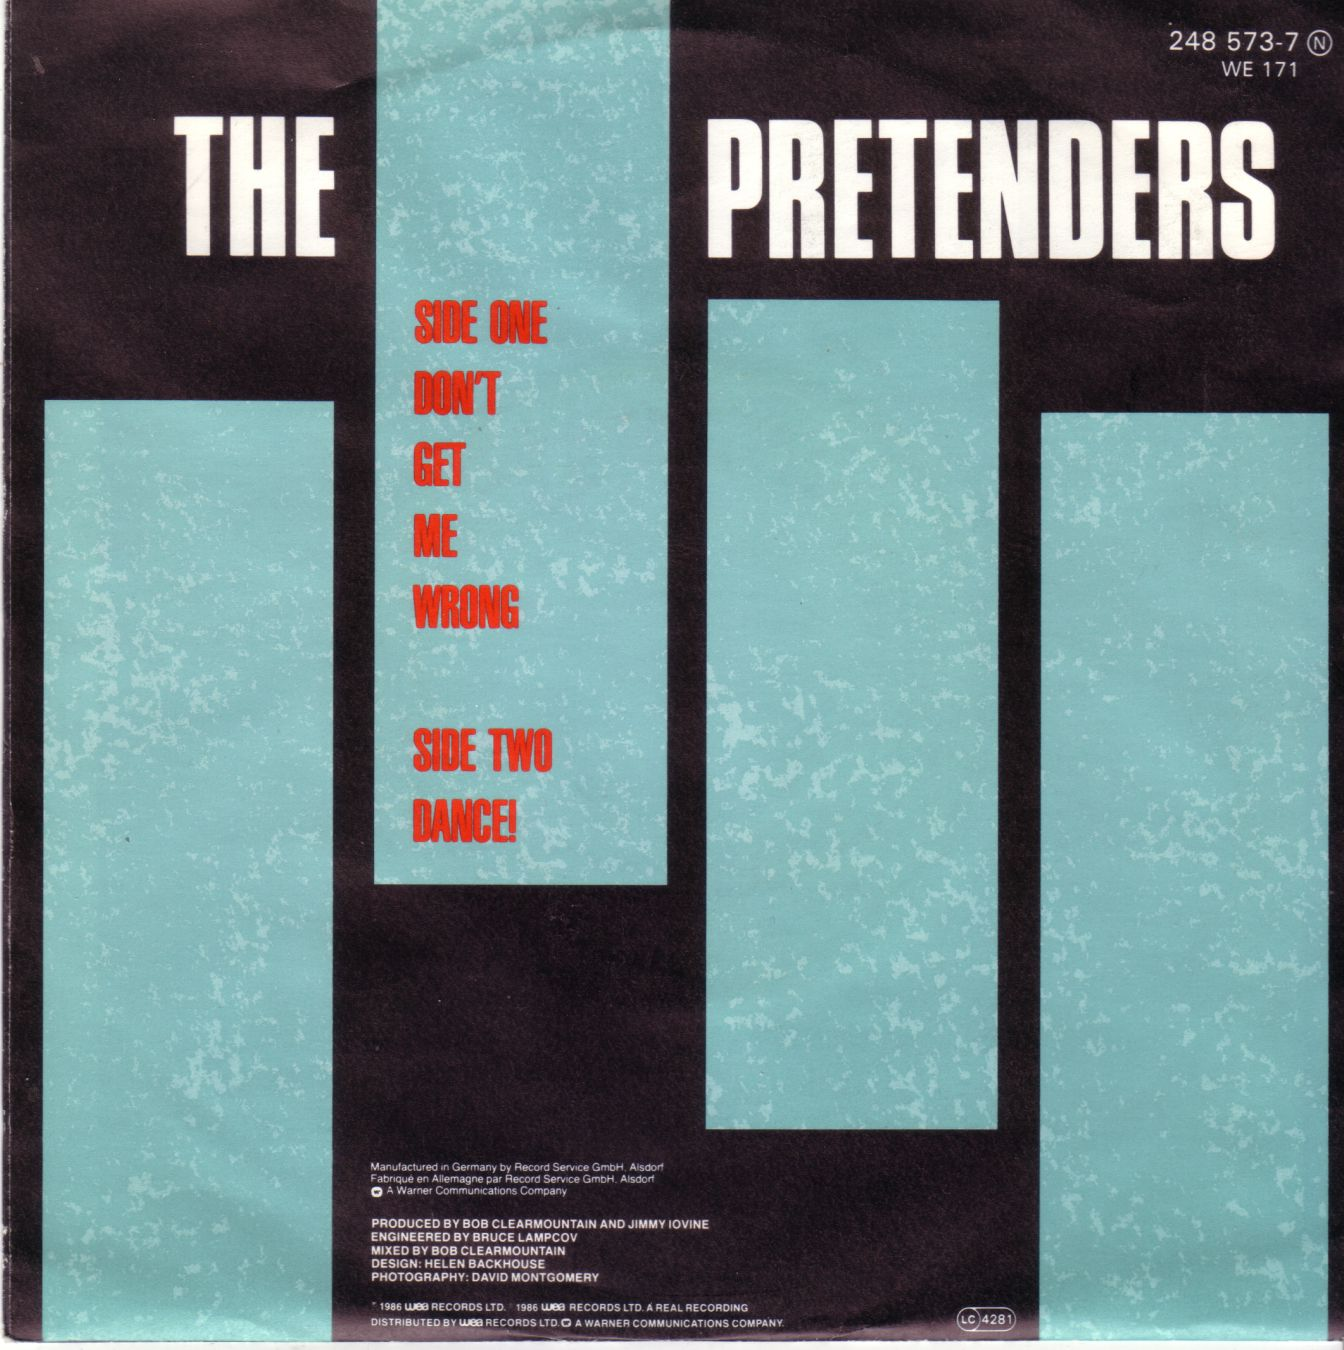 Pretenders Don T Get Me Wrong